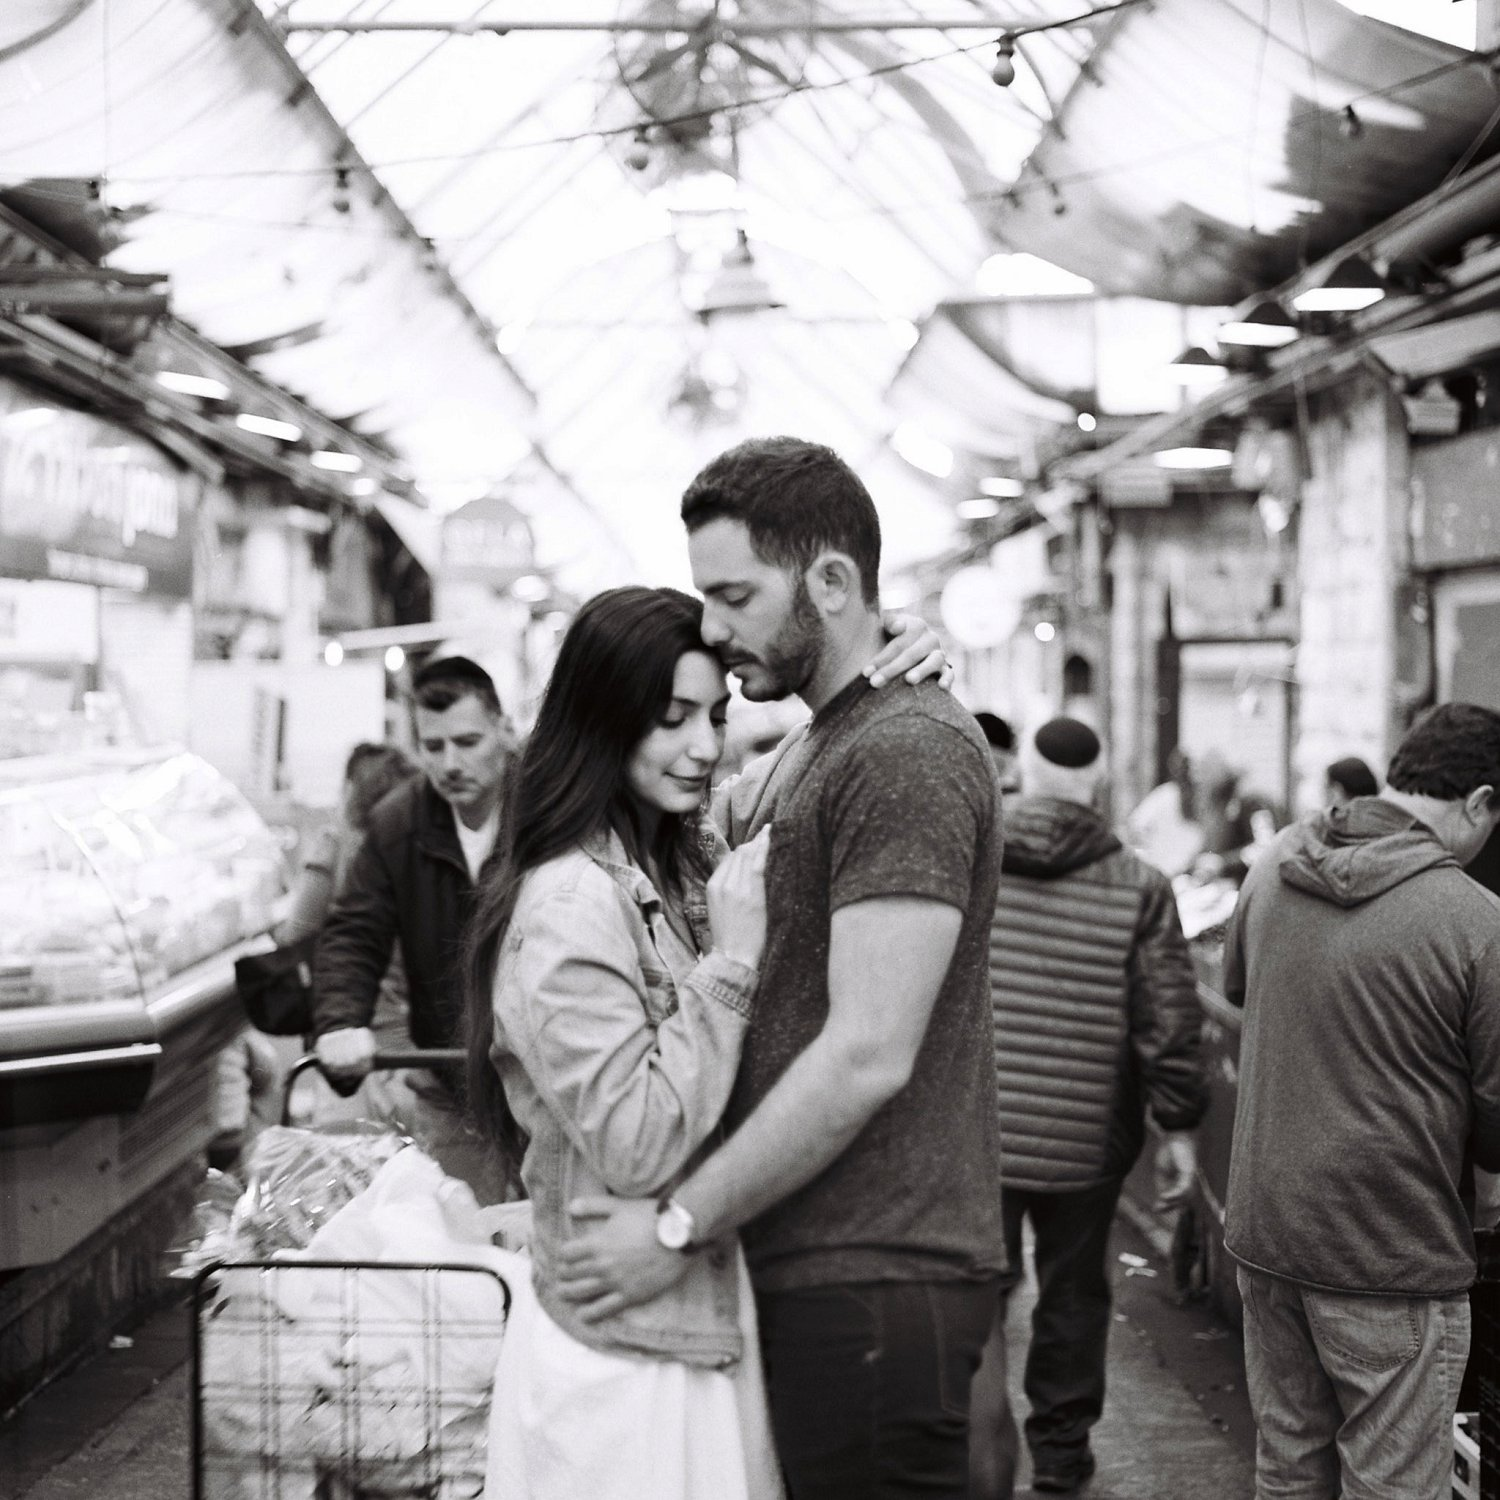 Couple embracing in the Machane Yehuda market in Jerusalem Israel during their engagement session